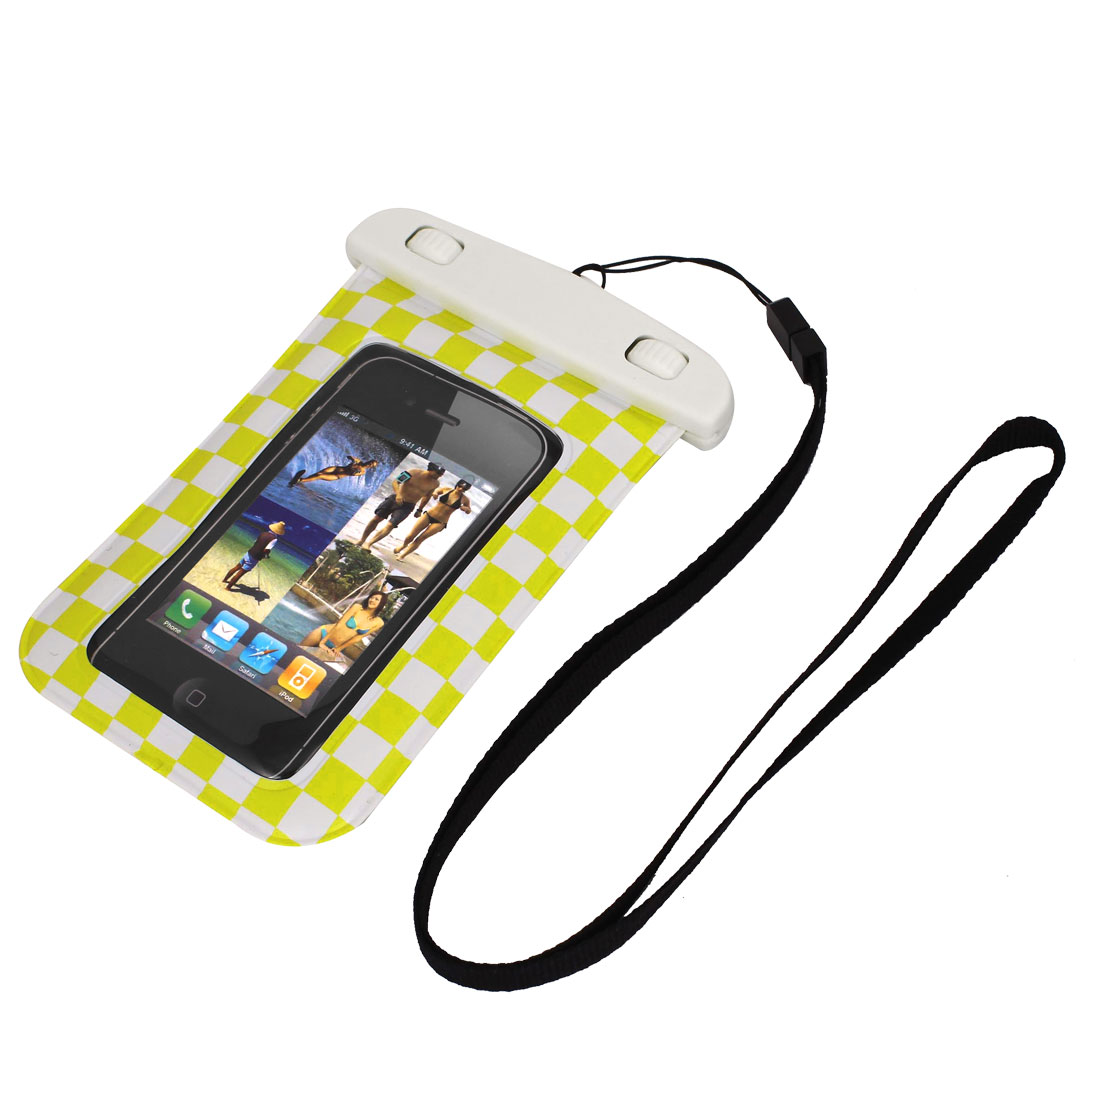 "Grid Pattern Waterproof Case Dry Bag Cover Pouch Holder Yellow for 4"" Cell Phone"